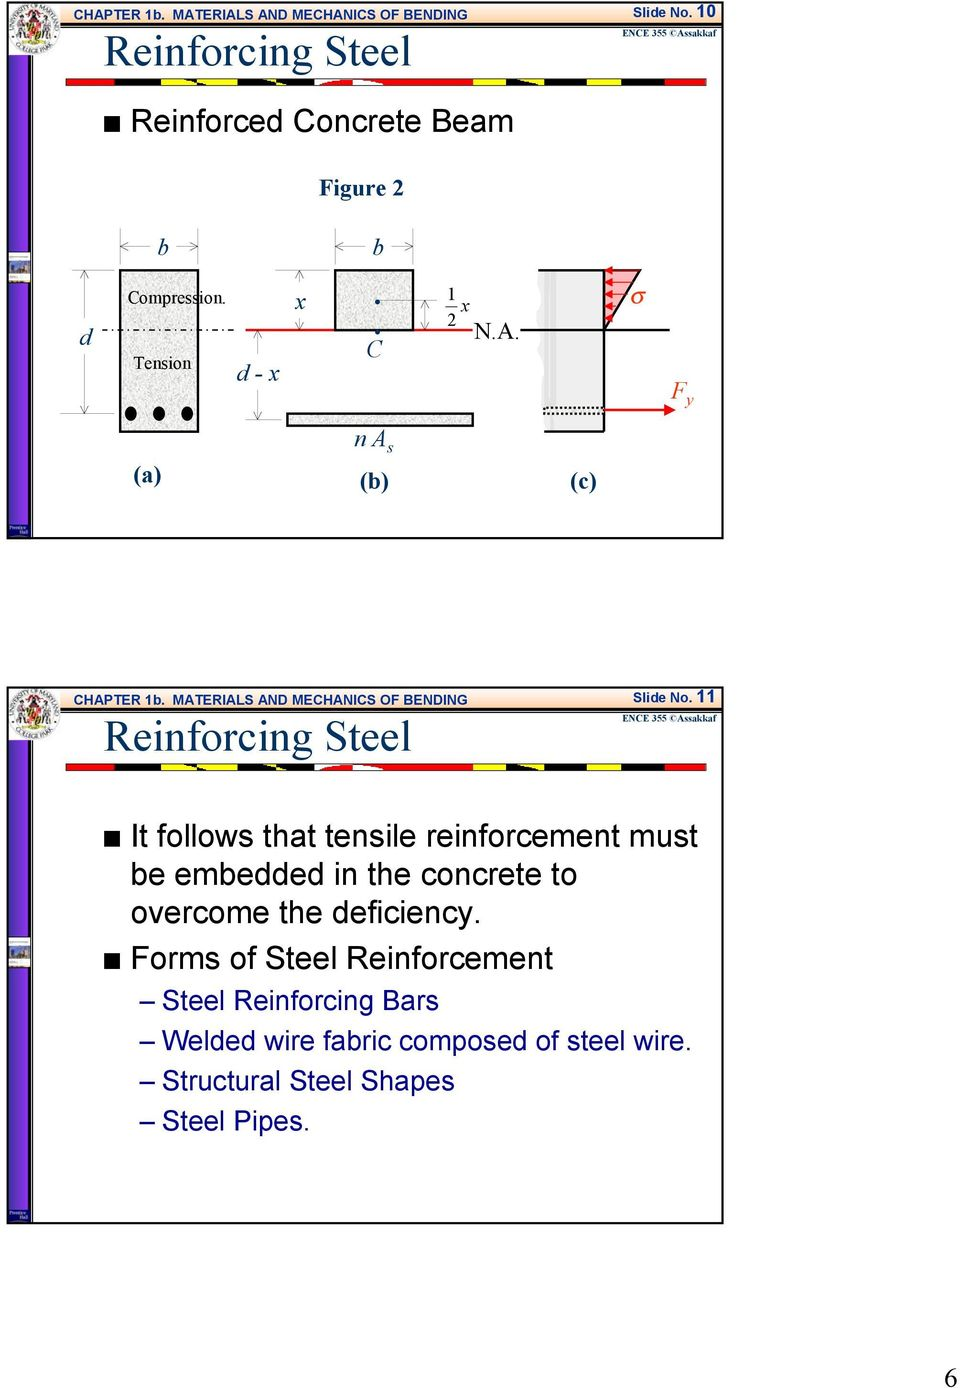 It follows that tensile reinforcement must be embedded in the concrete to overcome the deficiency.